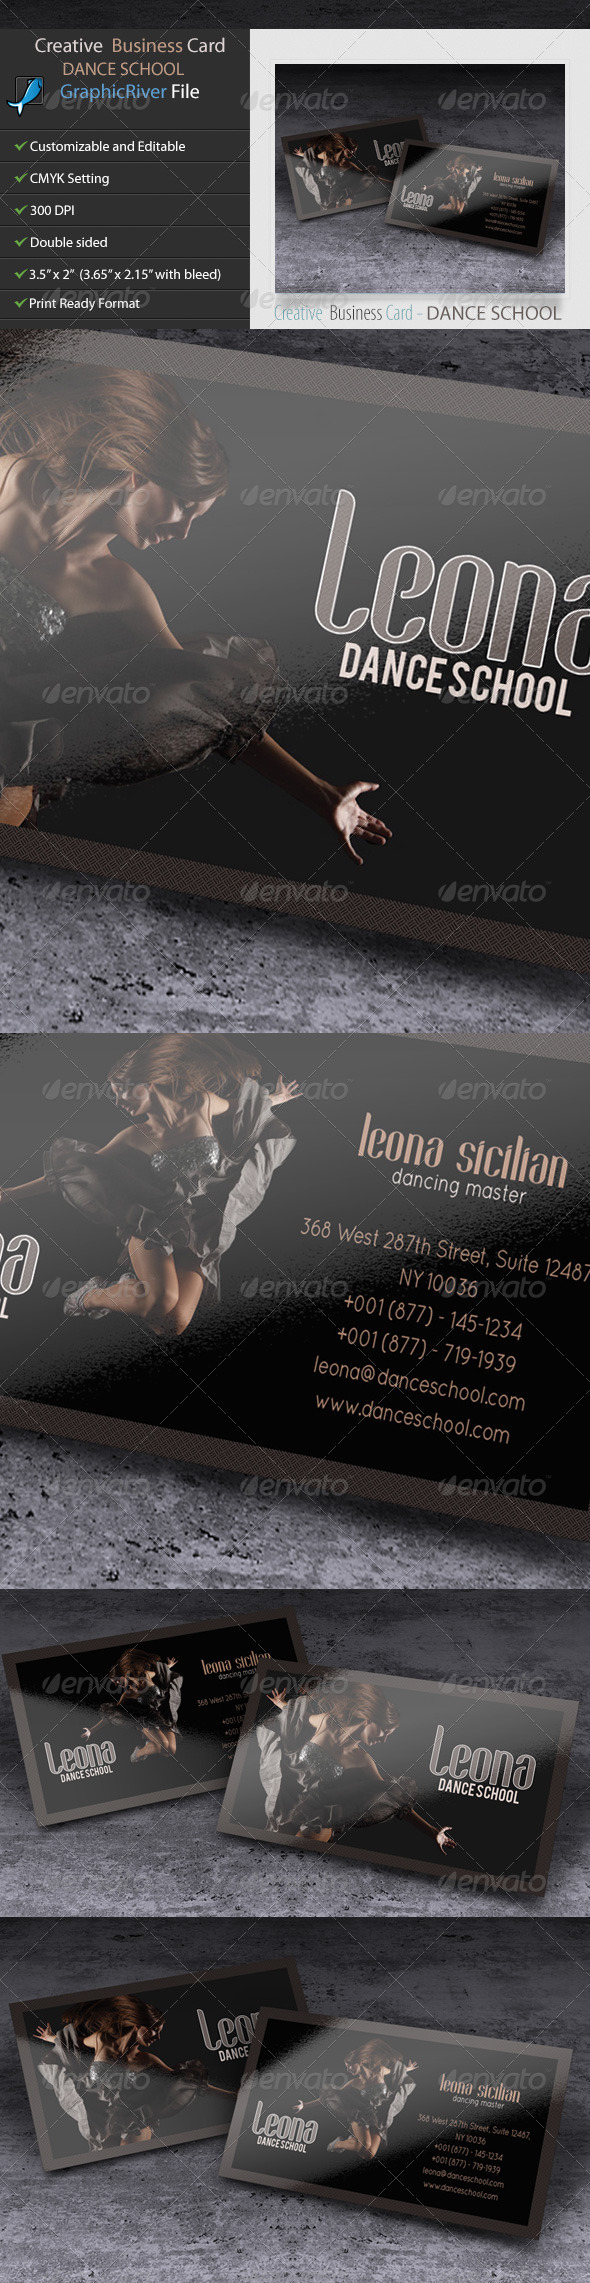 Creative Business Card Dance School